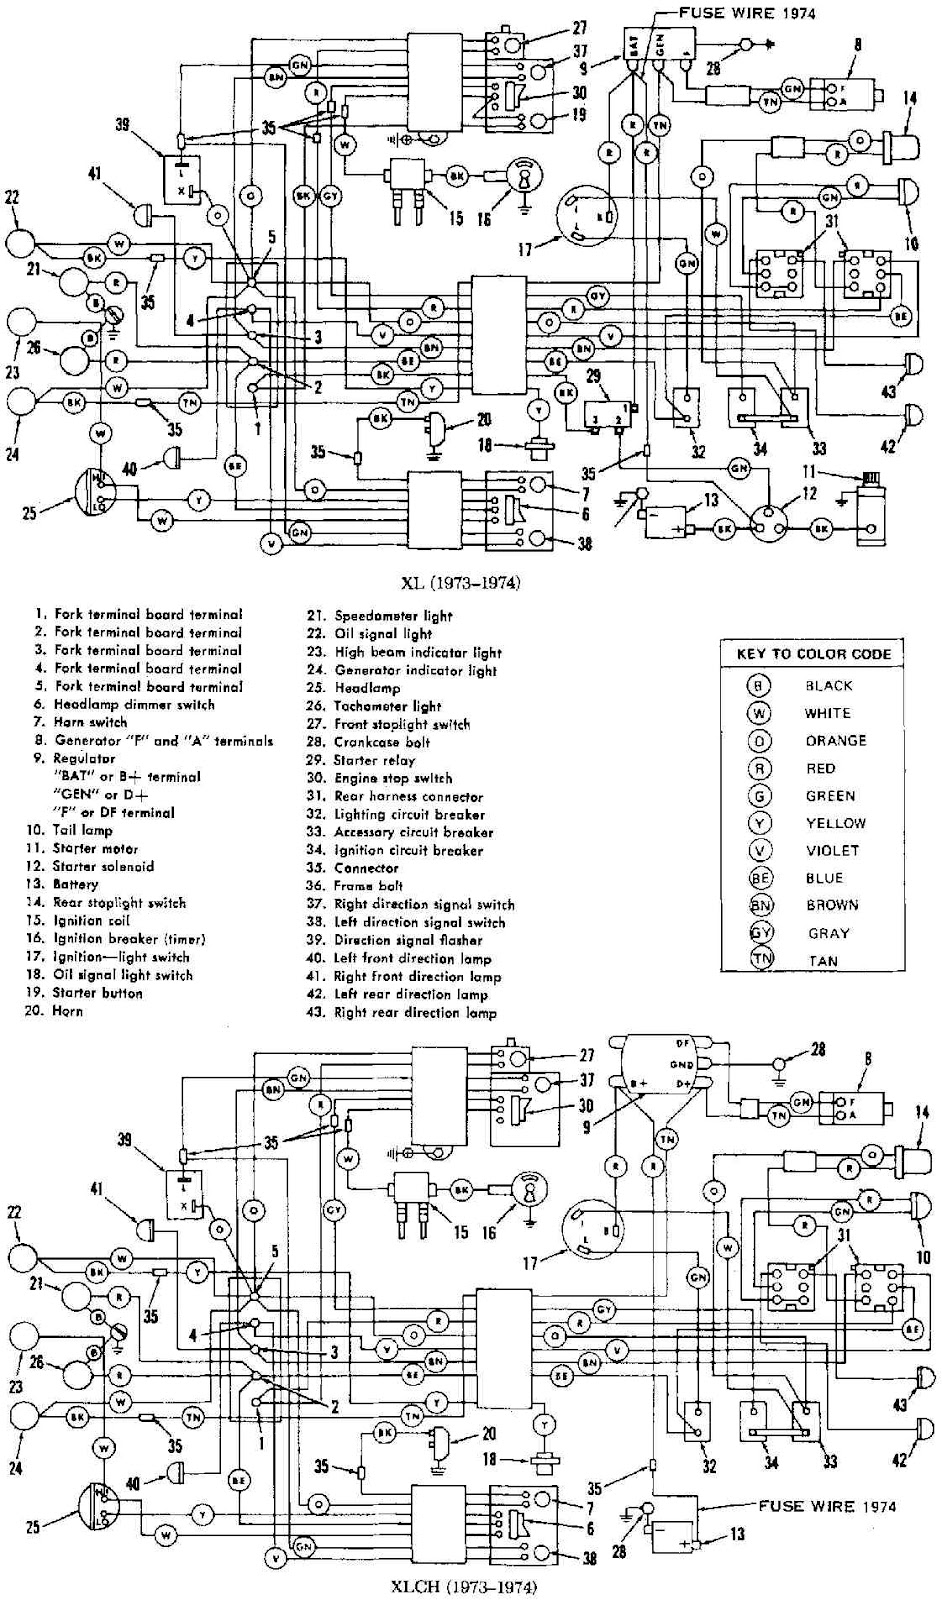 DIAGRAM] 77 Harley Xl Wiring Diagram FULL Version HD Quality ... on